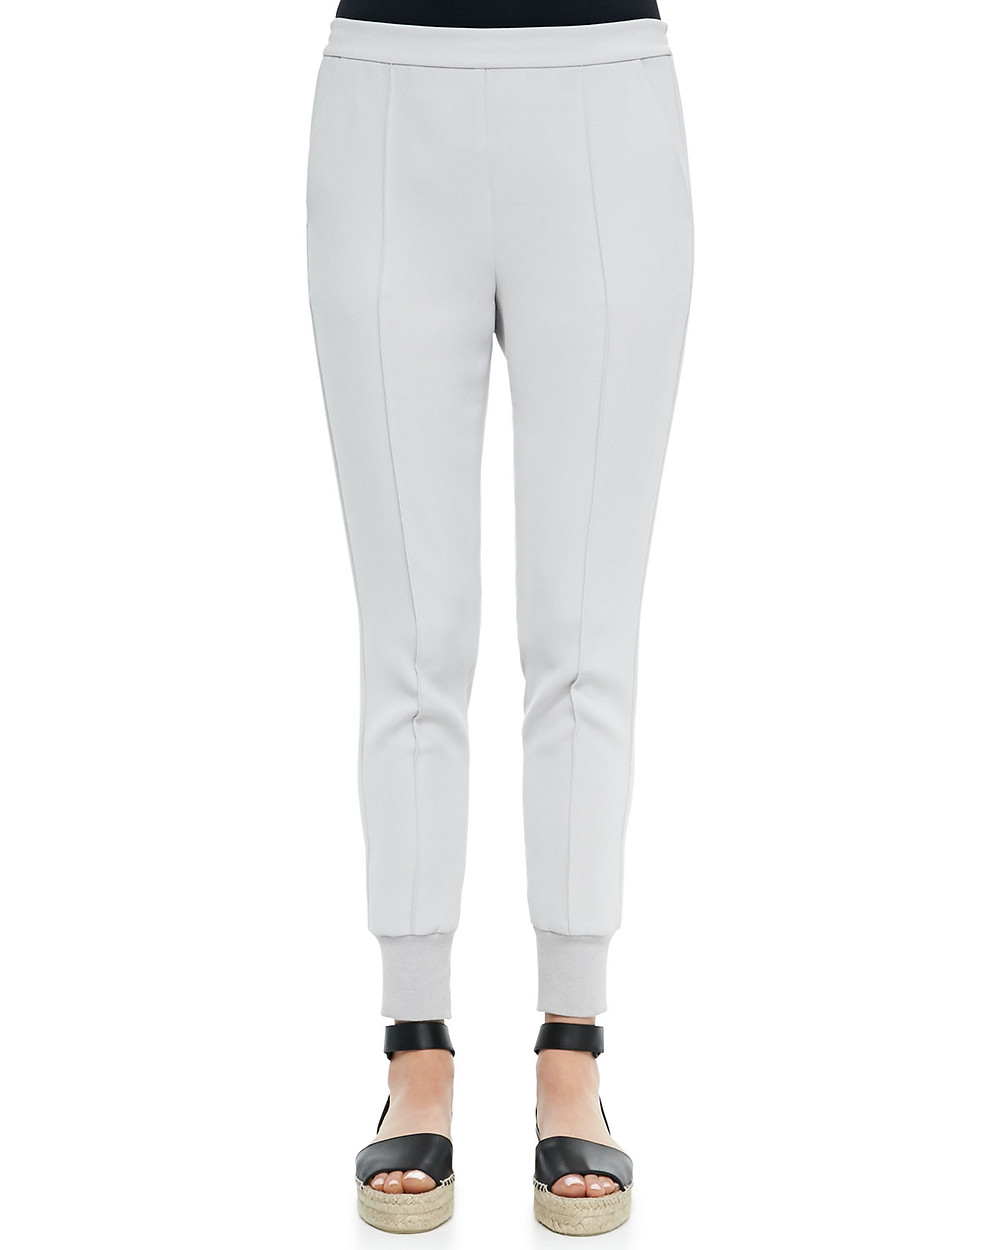 Vince slim jogger pant at Neiman Marcus for $103